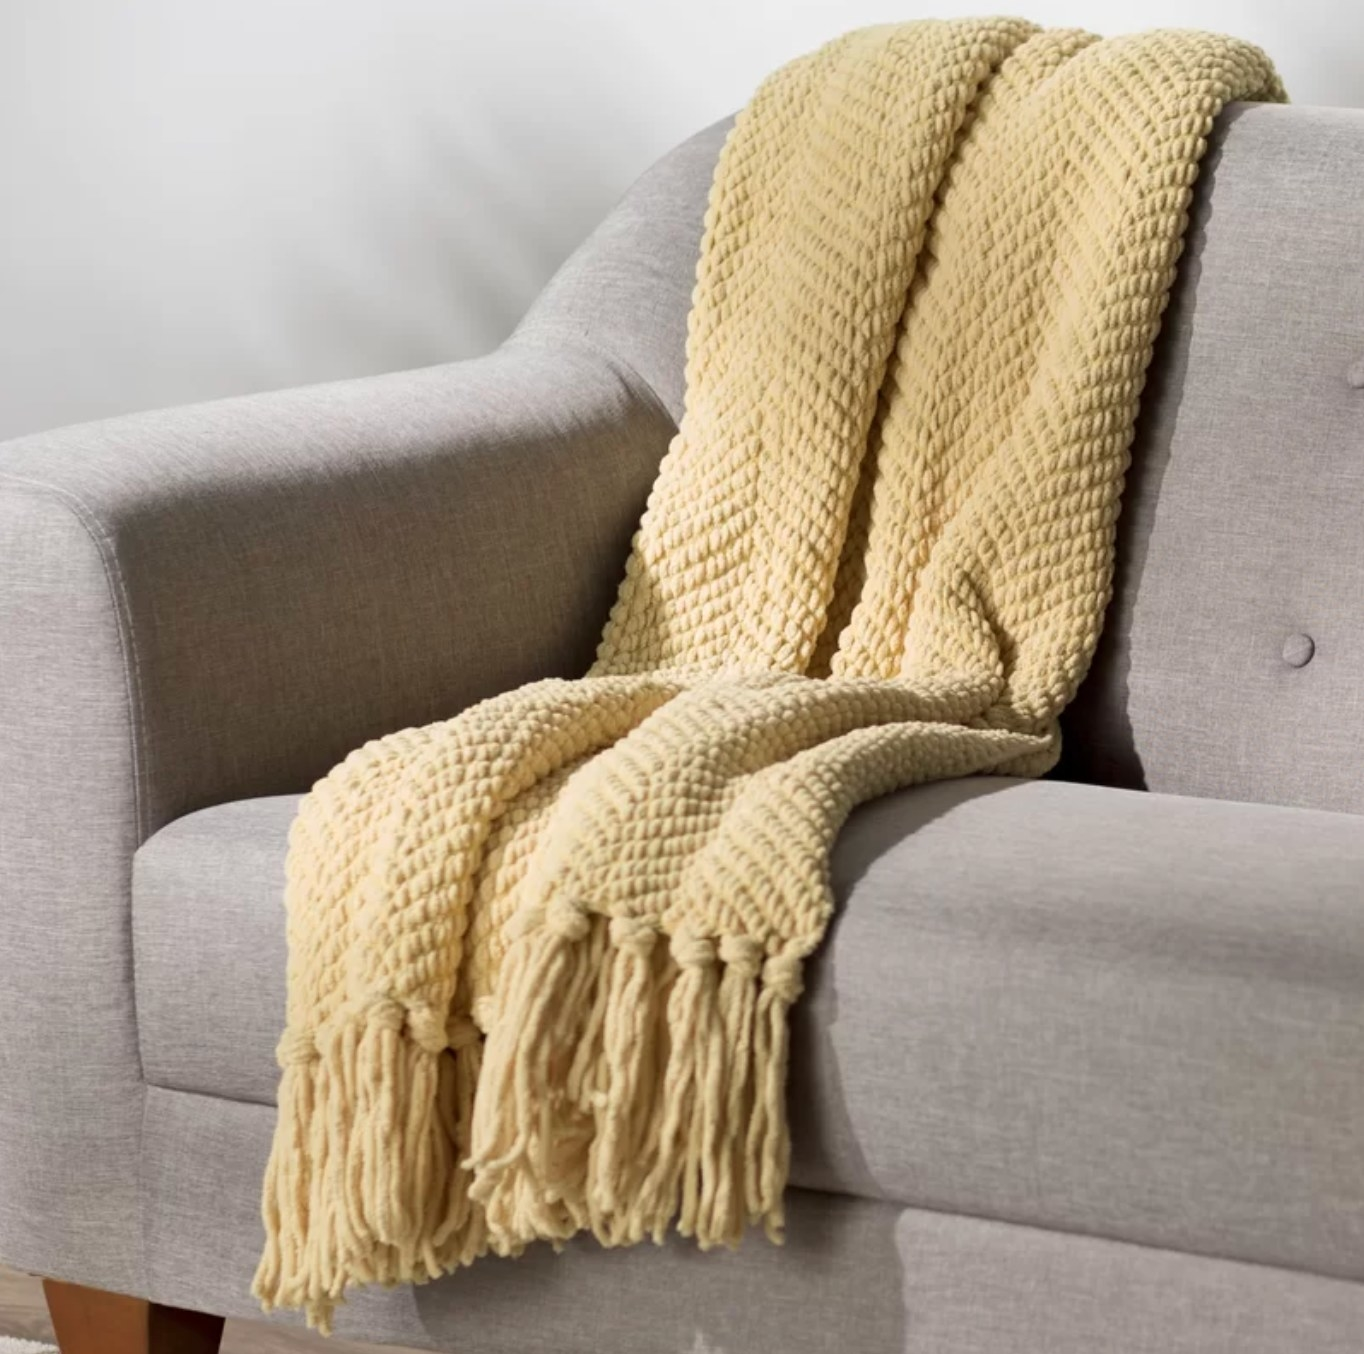 The knit blanket in jojoba yellow draped over a gray couch